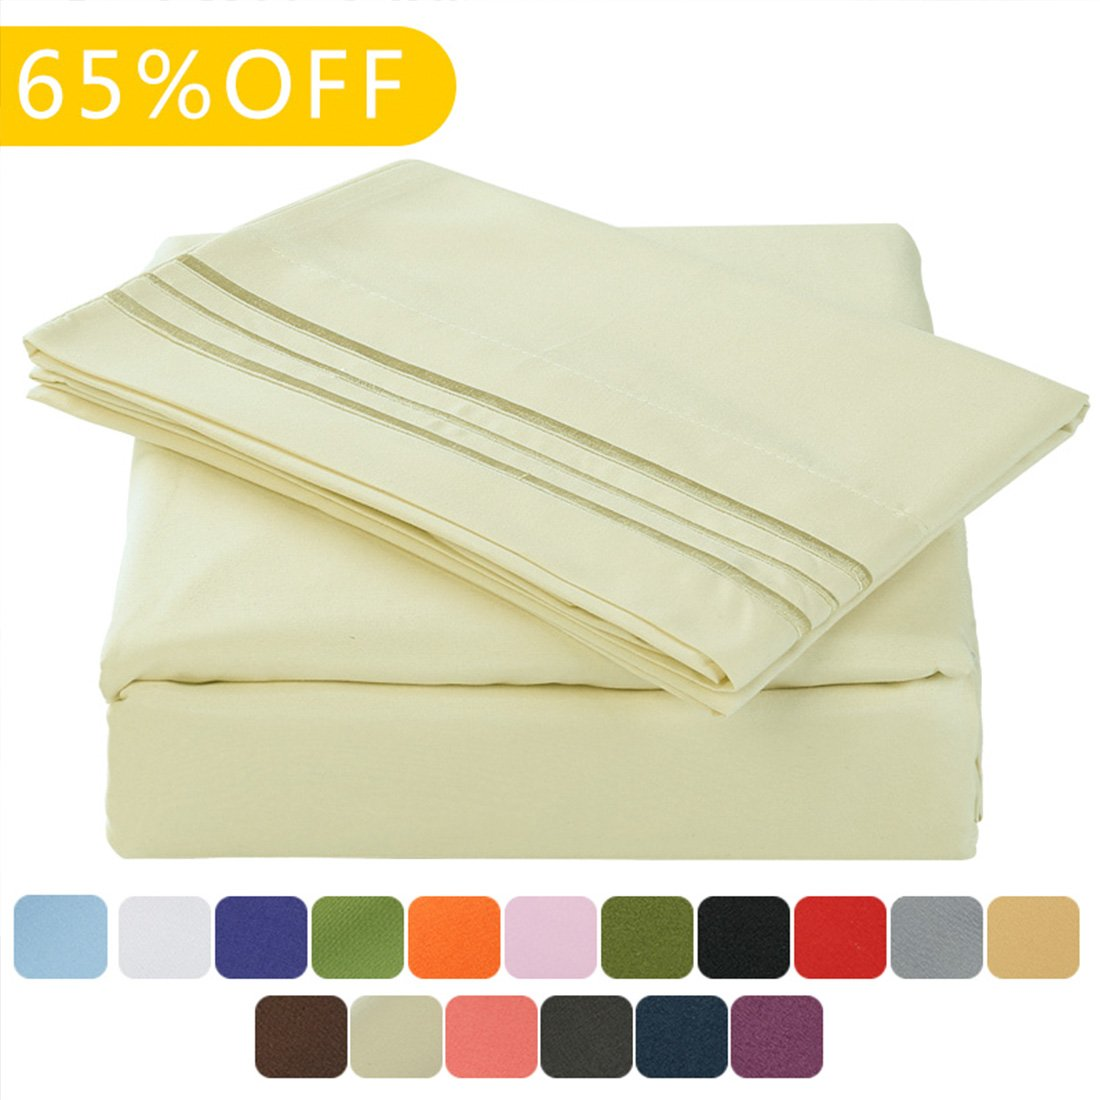 Microfiber 1800 Bedding Sheets Wrinkle, Fade, Stain Resistant - 4 PieceIvory,Full